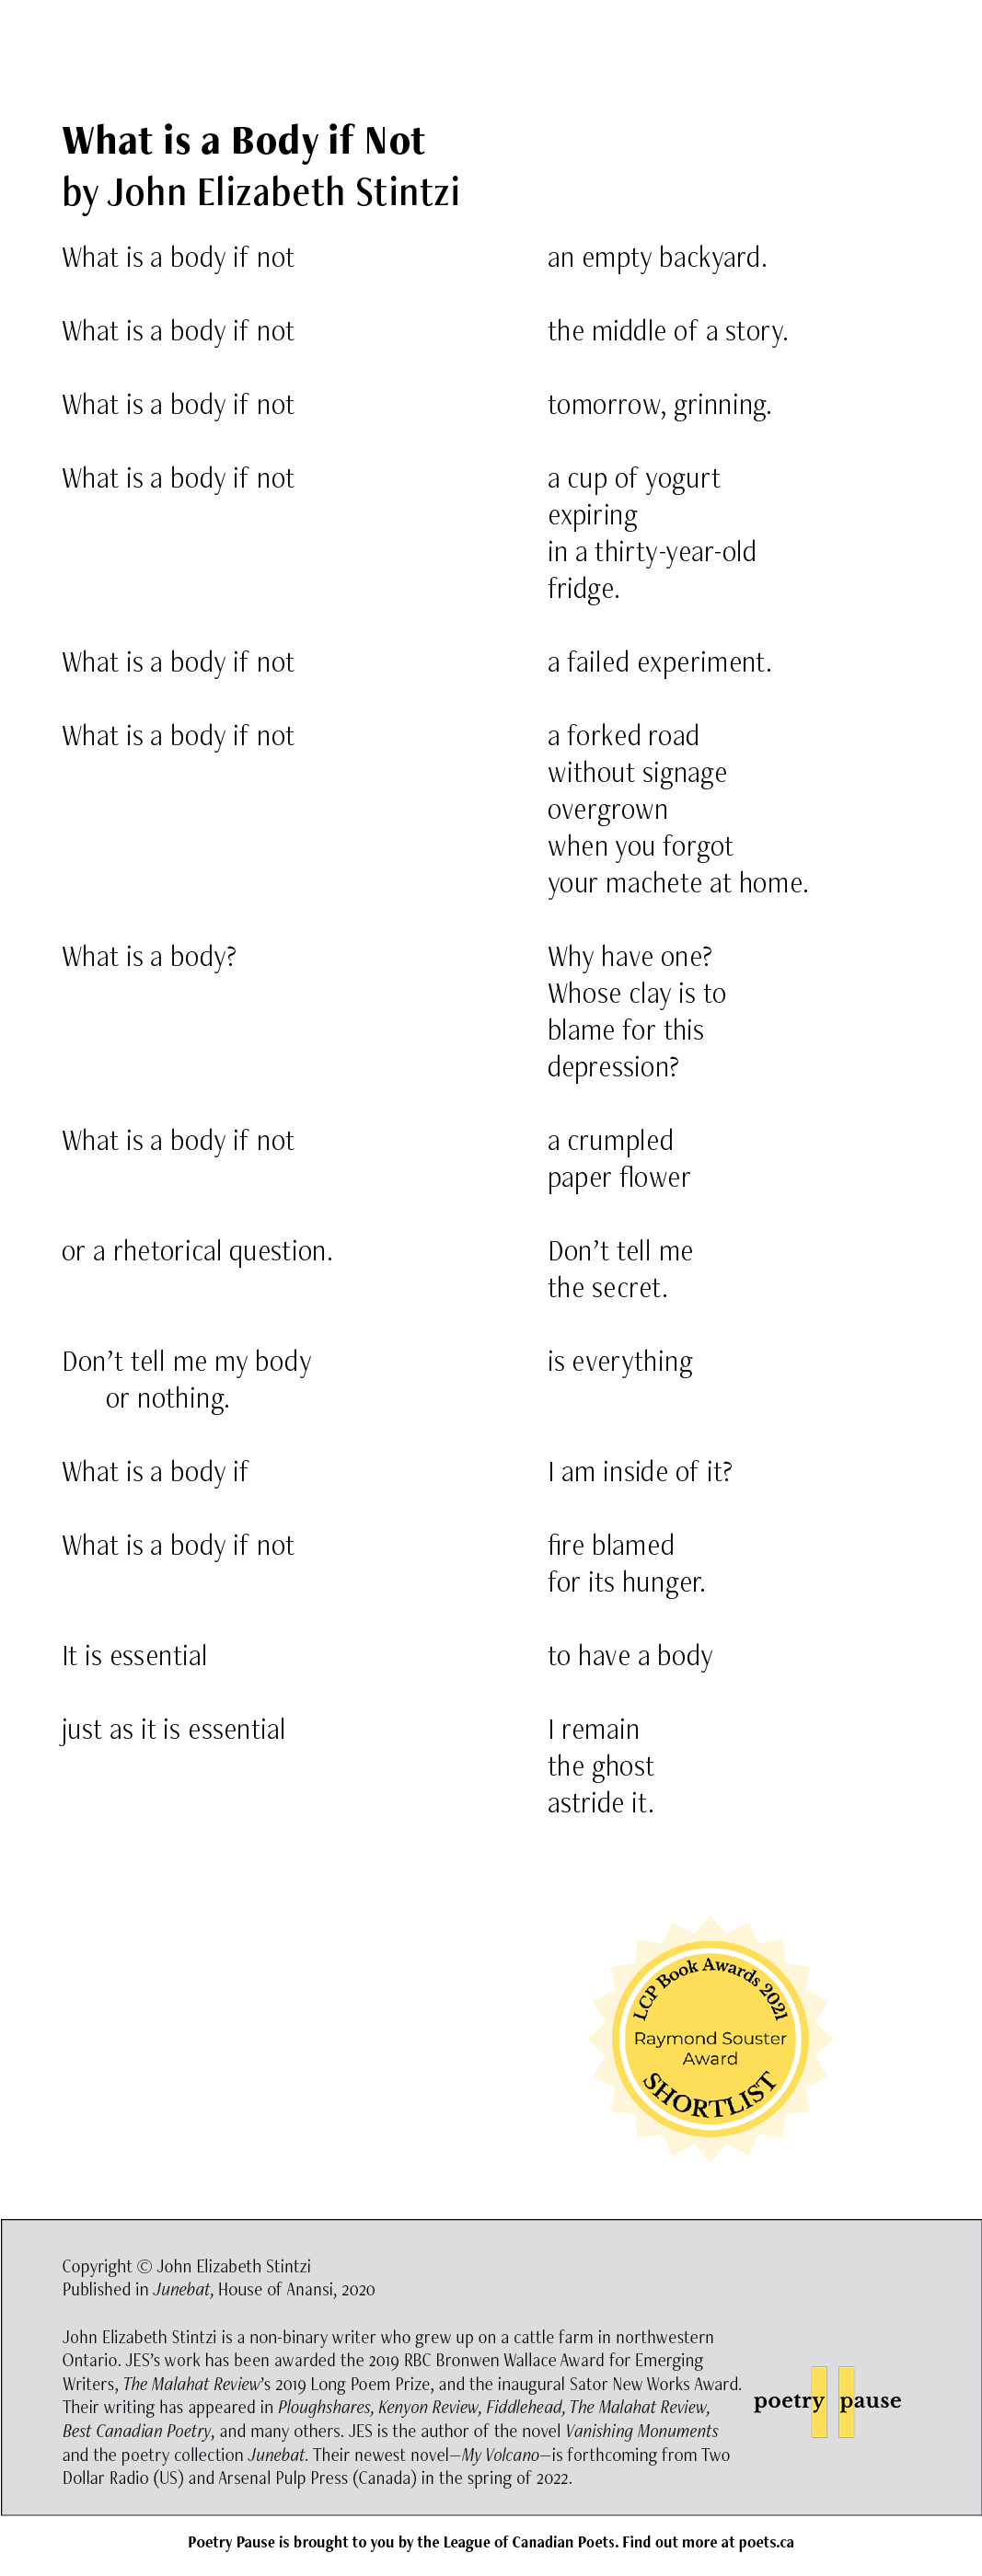 Poem Title: What is a Body if Not Poet Name: John Elizabeth Stintzi Poem: What is a body if not an empty backyard.  What is a body if not the middle of a story.   What is a body if not tomorrow, grinning.   What is a body if not a cup of yogurt expiring in a thirty-year-old fridge.   What is a body if not a failed experiment.   What is a body if not a forked road without signage  overgrown when you forgot your machete at home.   What is a body? Why have one?  Whose clay is to  blame for this  depression?  What is a body if not a crumpled  paper flower   or a rhetorical question. Don't tell me  the secret.   Don't tell me my body is everything or nothing.   What is a body if I am inside of it?   What is a body if not fire blamed  for its hunger.   It is essentialto have a body   just as it is essential I remain  the ghost  astride it.   End of poem.  Credits: Copyright © John Elizabeth Stintzi Published in Junebat, House of Anansi, 2020  John Elizabeth Stintzi is a non-binary writer who grew up on a cattle farm in northwestern Ontario. JES's work has been awarded the 2019 RBC Bronwen Wallace Award for Emerging Writers, The Malahat Review's 2019 Long Poem Prize, and the inaugural Sator New Works Award. Their writing has appeared in Ploughshares, Kenyon Review, Fiddlehead, The Malahat Review, Best Canadian Poetry, and many others. JES is the author of the novel Vanishing Monuments and the poetry collection Junebat. Their newest novel—My Volcano—is forthcoming from Two Dollar Radio (US) and Arsenal Pulp Press (Canada) in the spring of 2022.